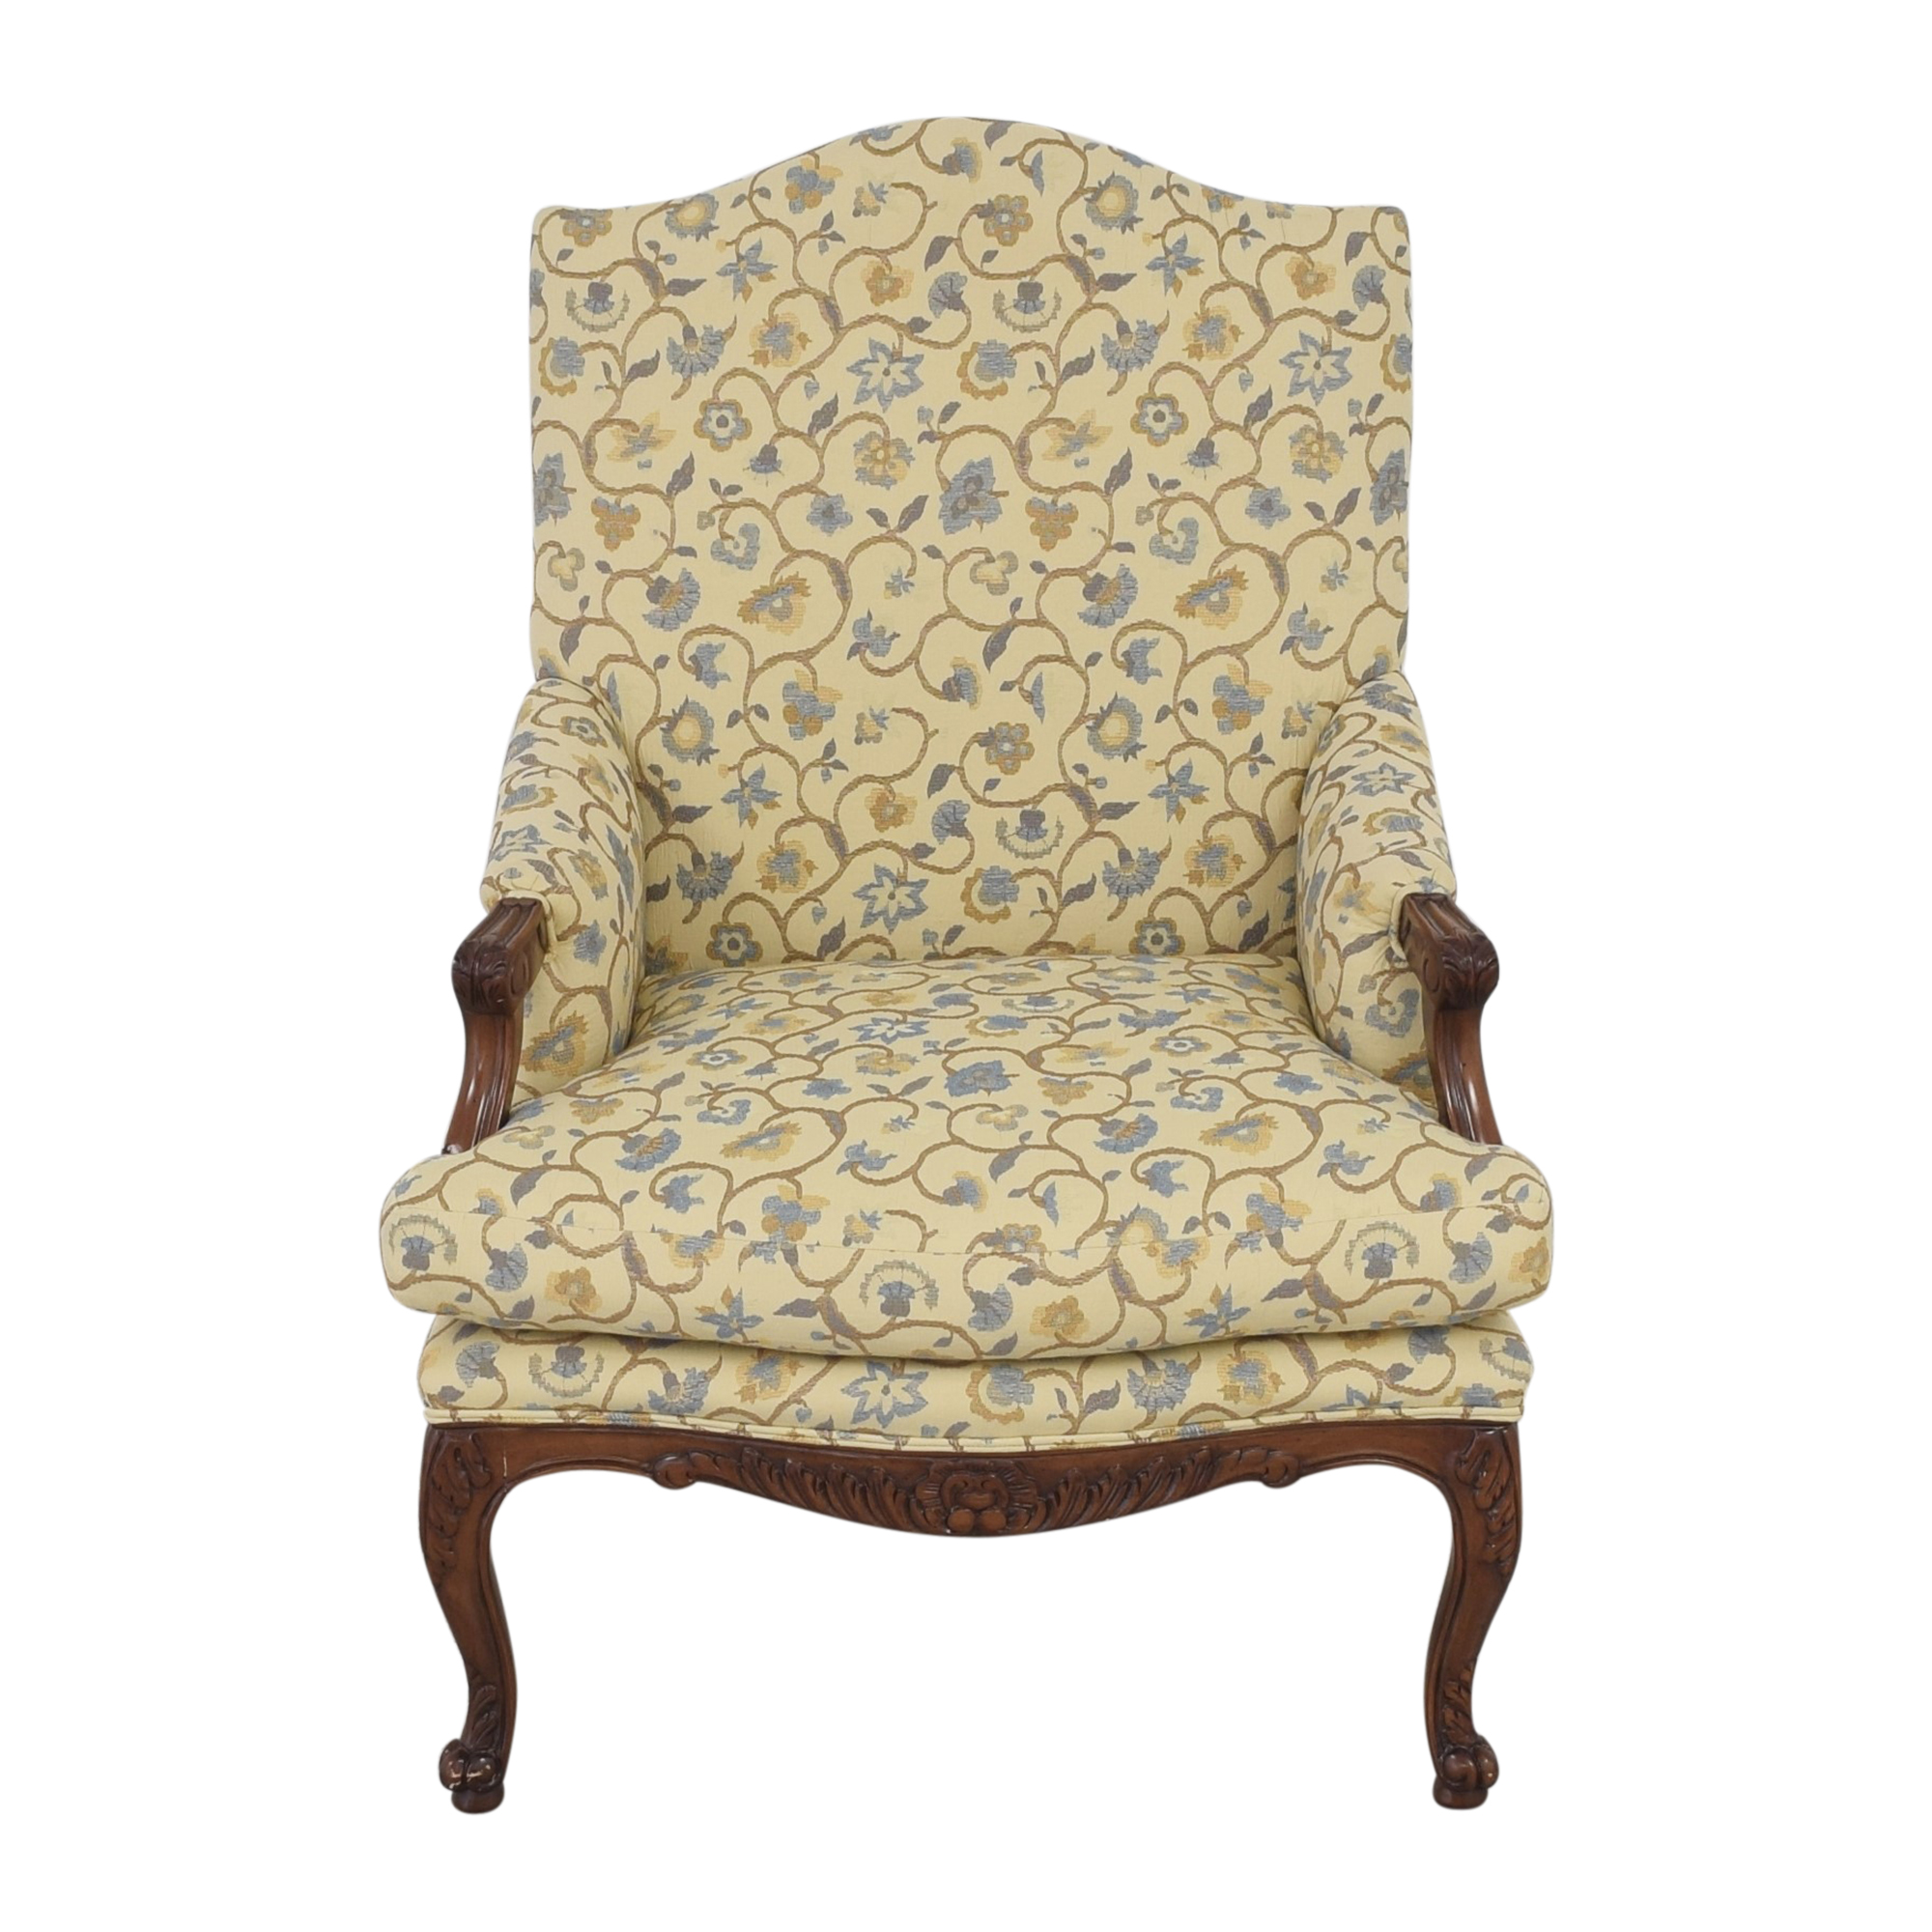 Kravet Kravet Upholstered Chair nyc